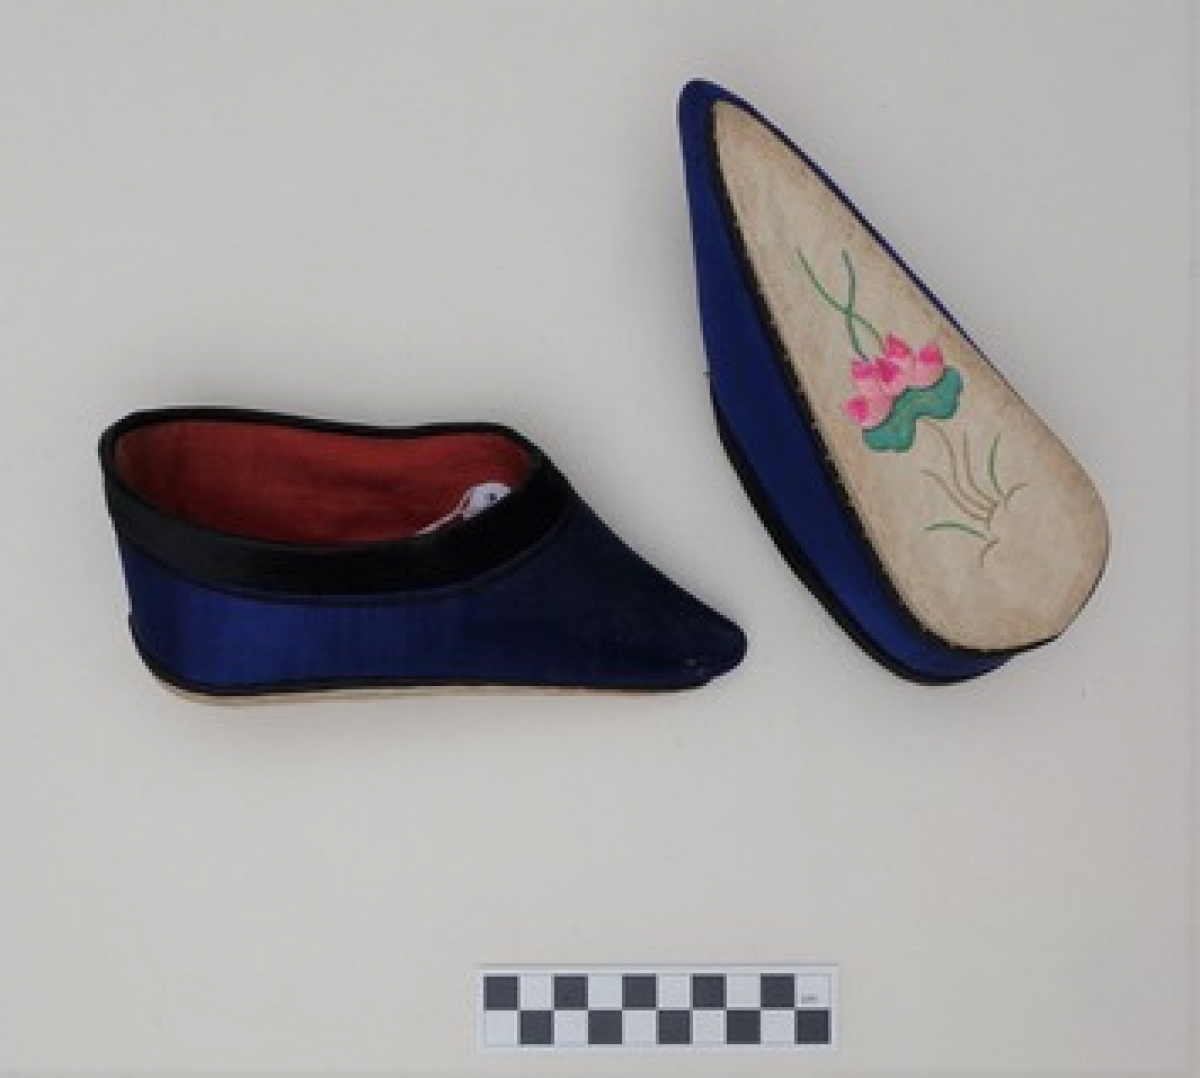 Pair of funeral lotus soes, early 20th century.